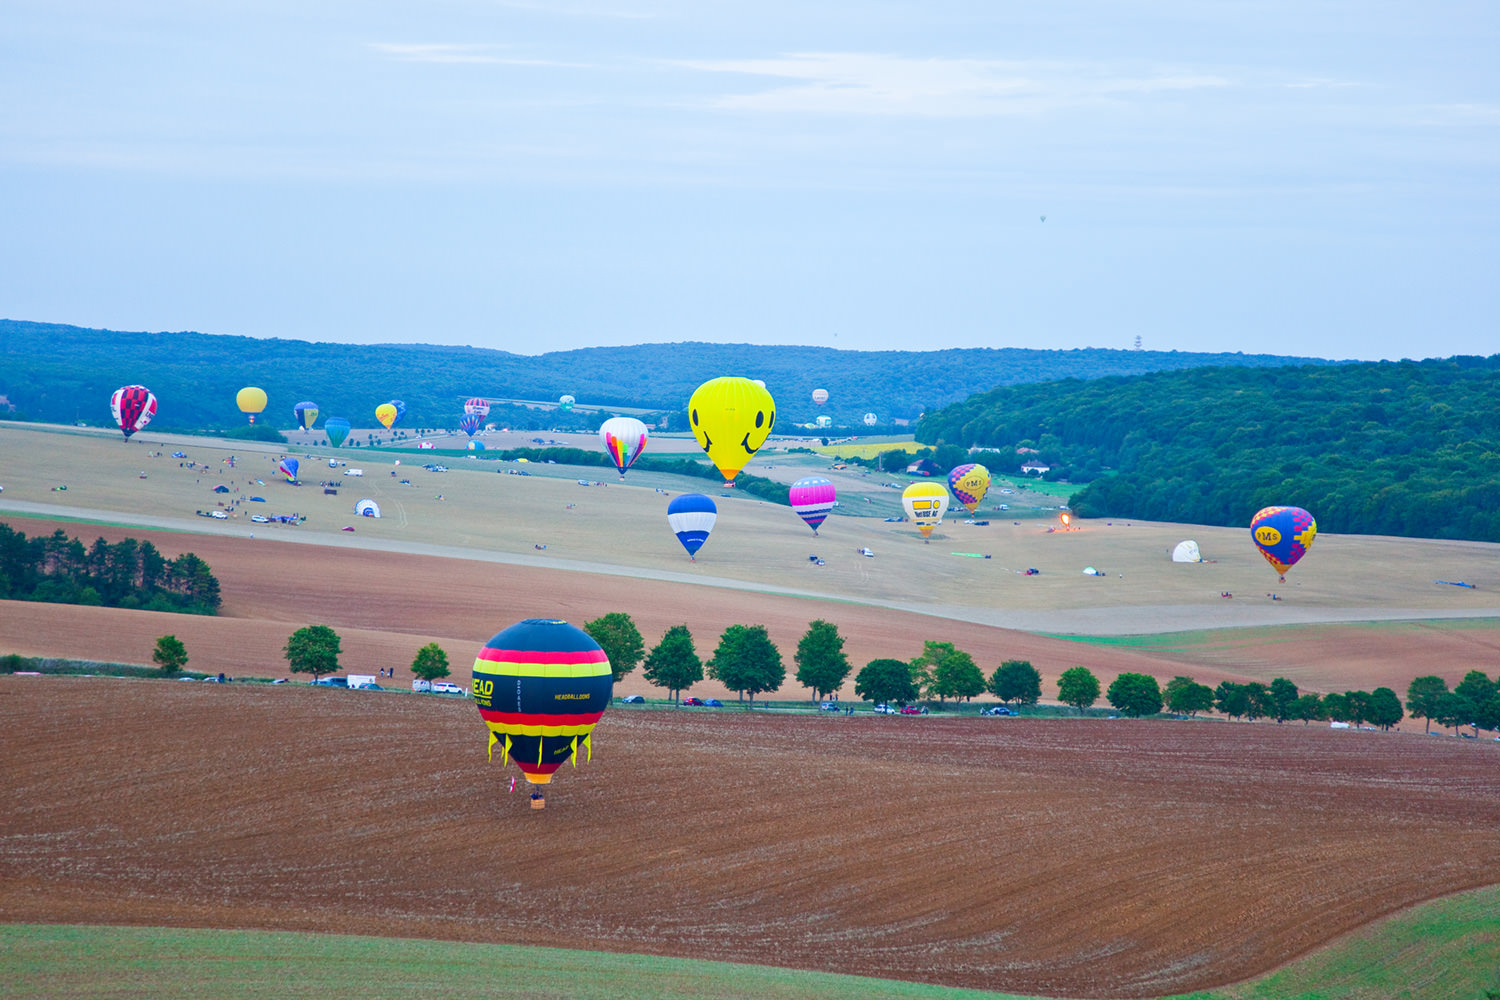 Planet Air, Chambley, Département Meurthe-et-Moselle, France